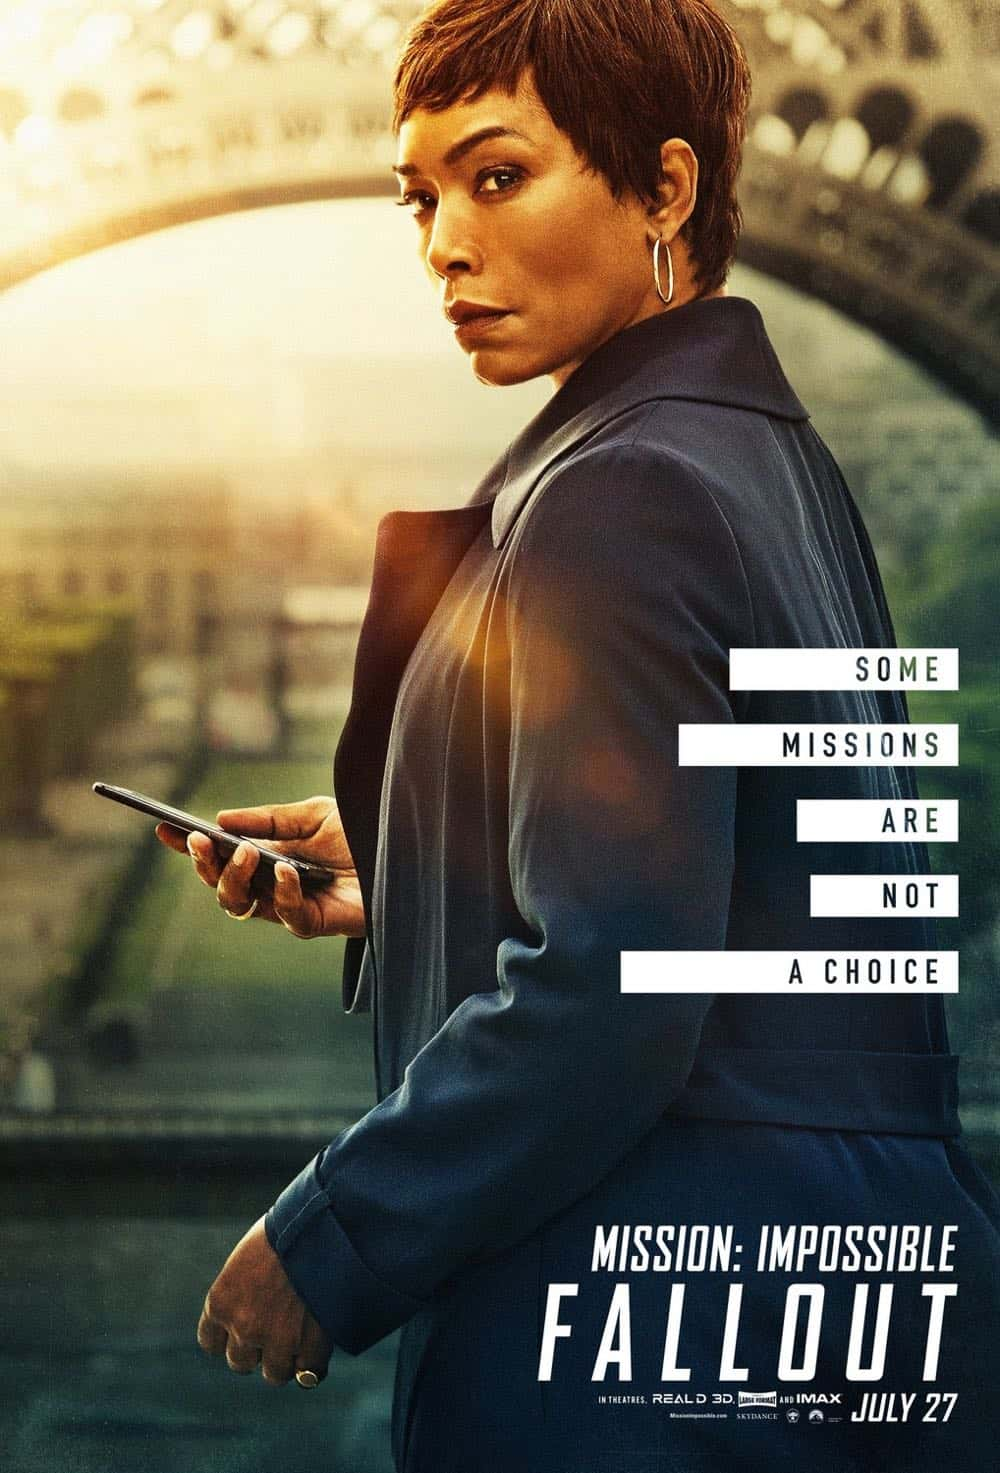 Mission Impossible Fallout Character Movie Poster Angela Bassett